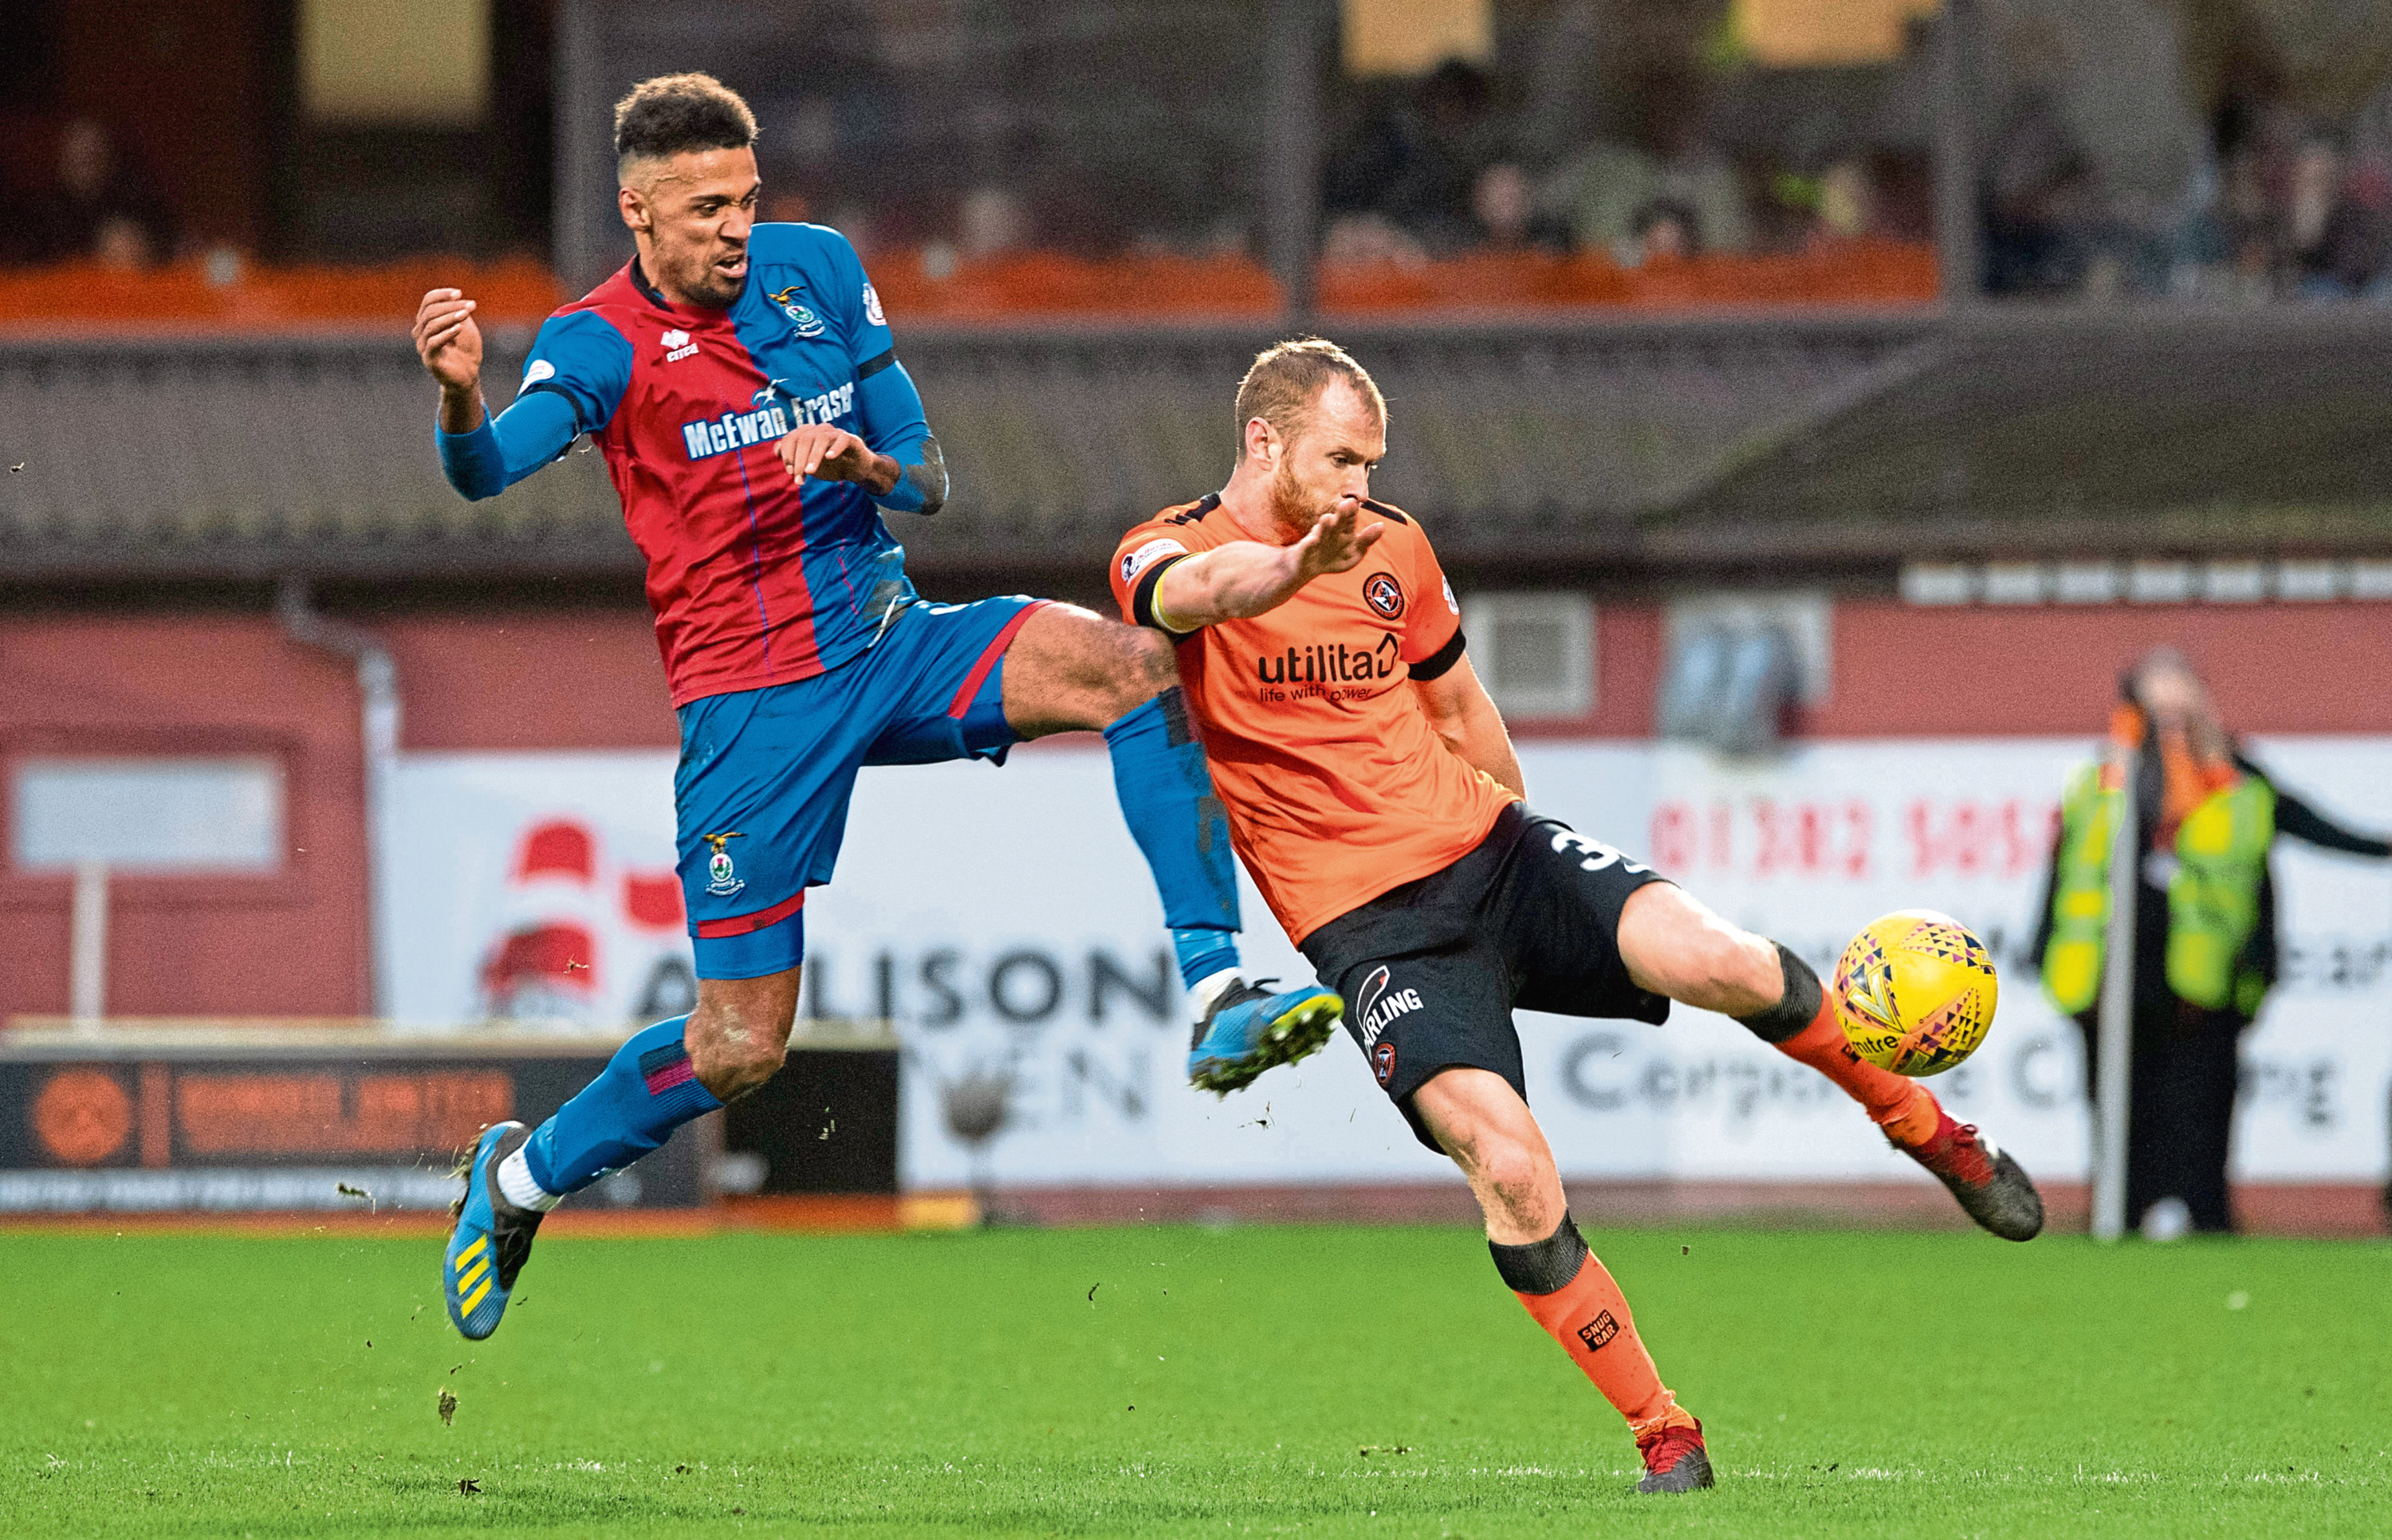 Mark Reynolds has been solid in defence for Dundee United since signing on-loan from Aberdeen in January and will make his move permanent in the summer.